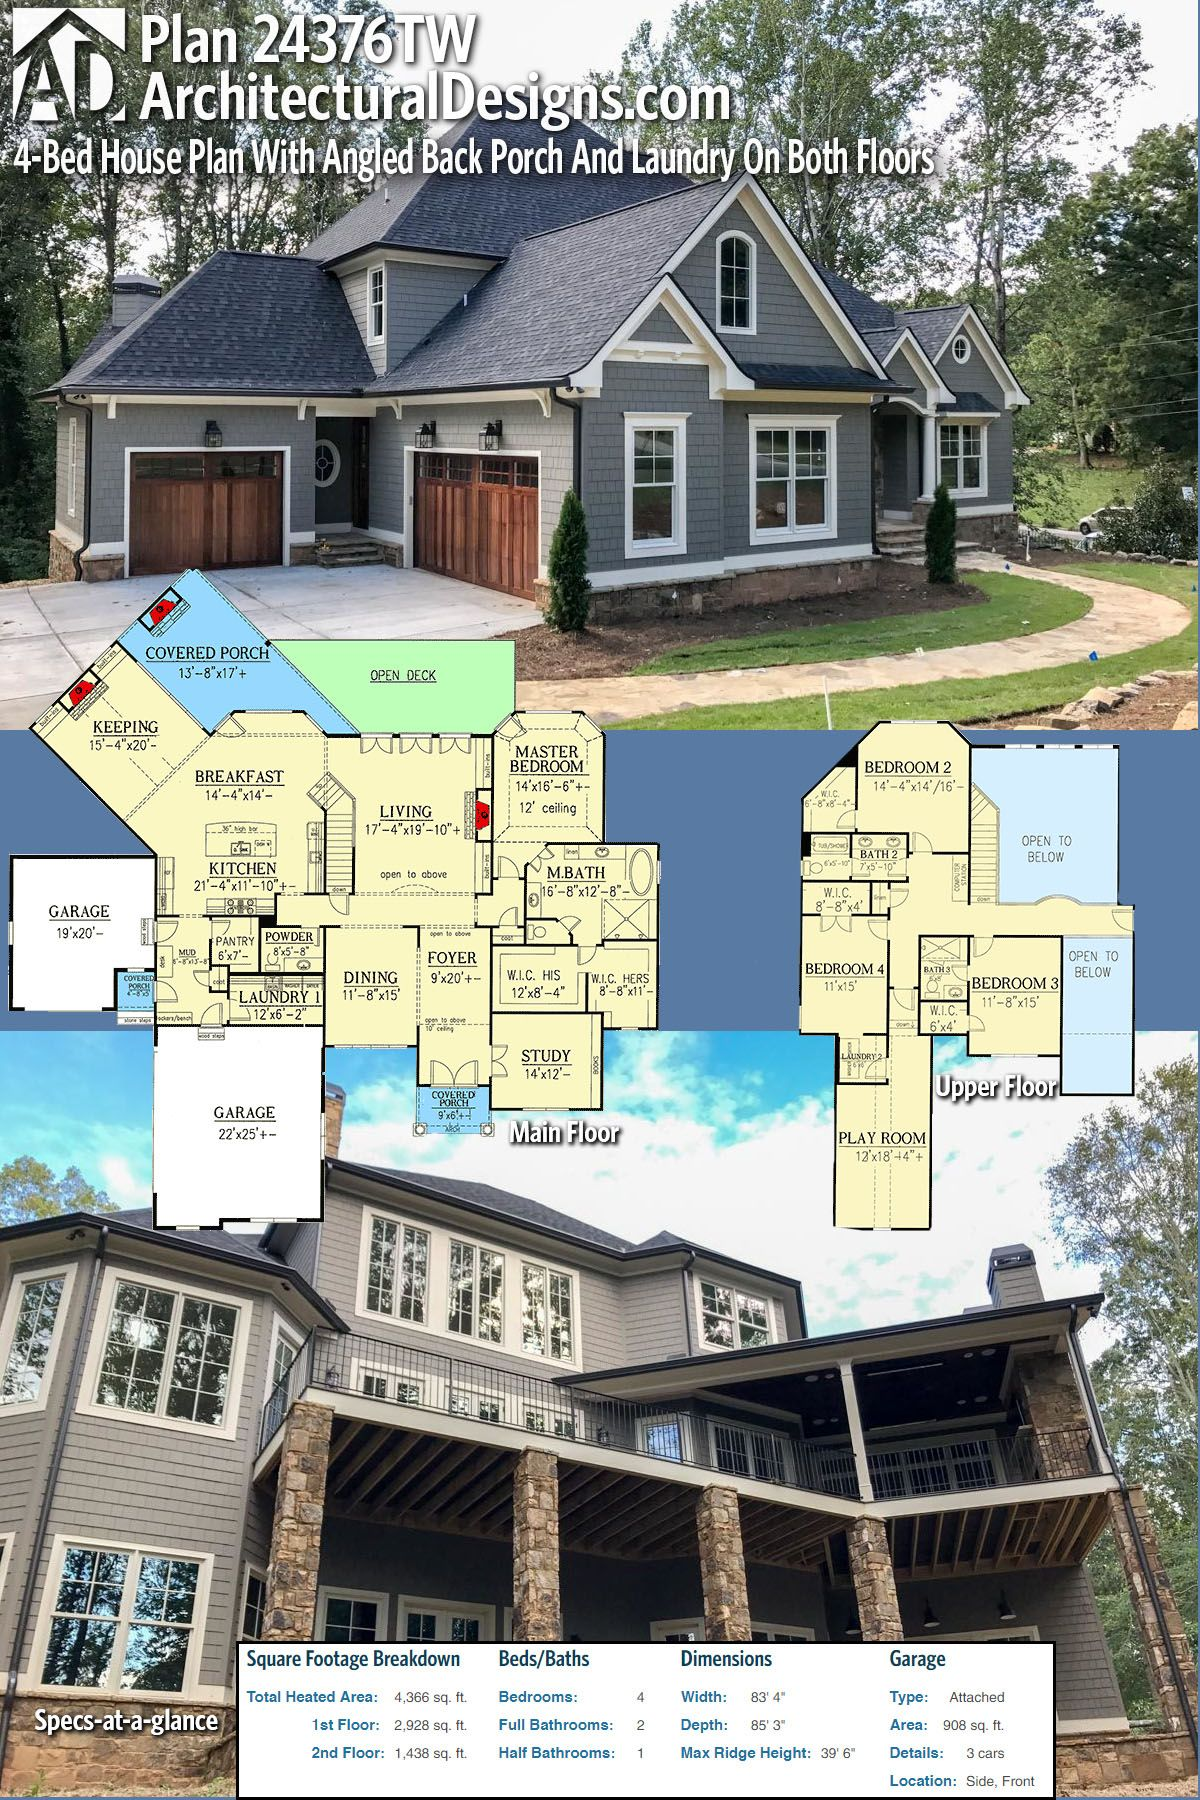 Plan 24376TW Striking Curb Appeal Plan 24376TW